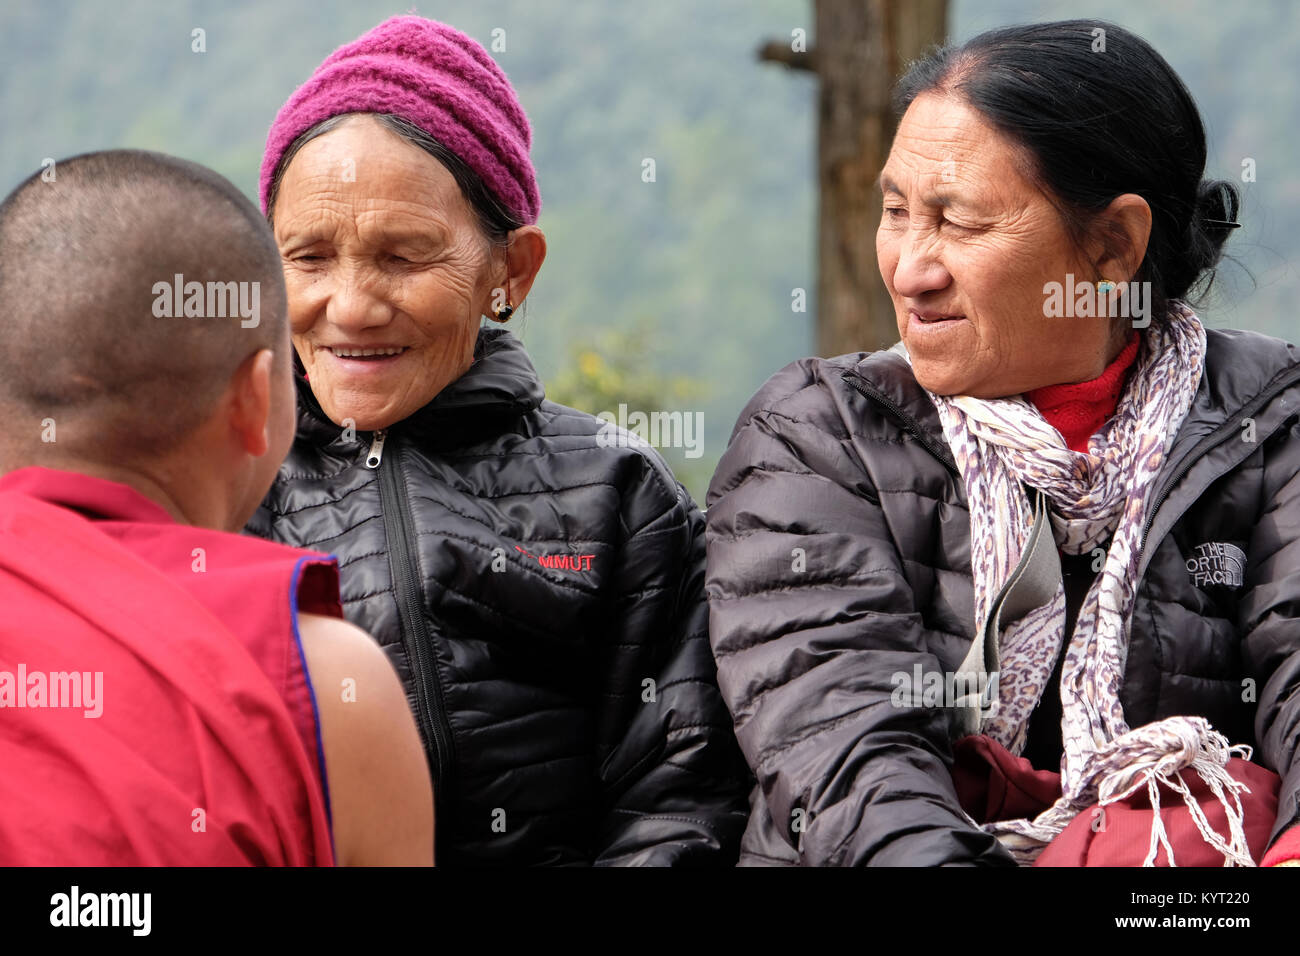 Two Tibetan refugees in Dharamshala, India, talking to a Buddhist monk - Stock Image